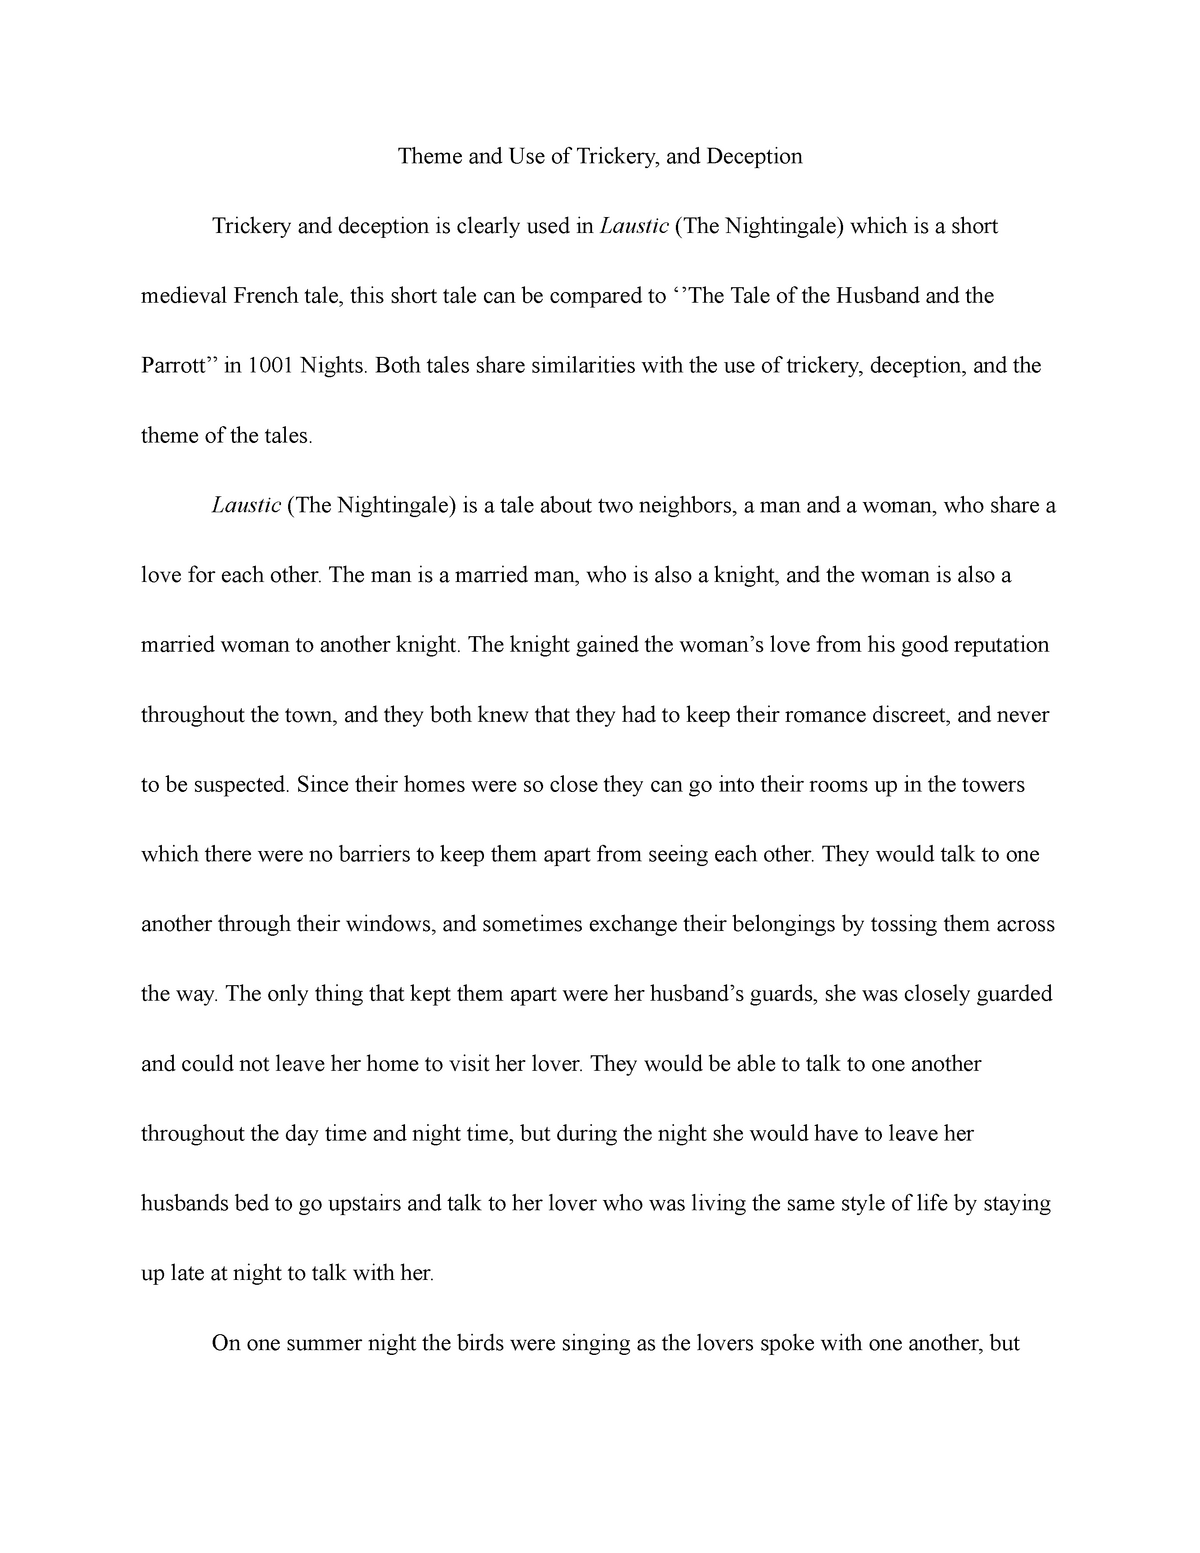 Laustic (The Nightingale) - WRIT 106: College Writing II